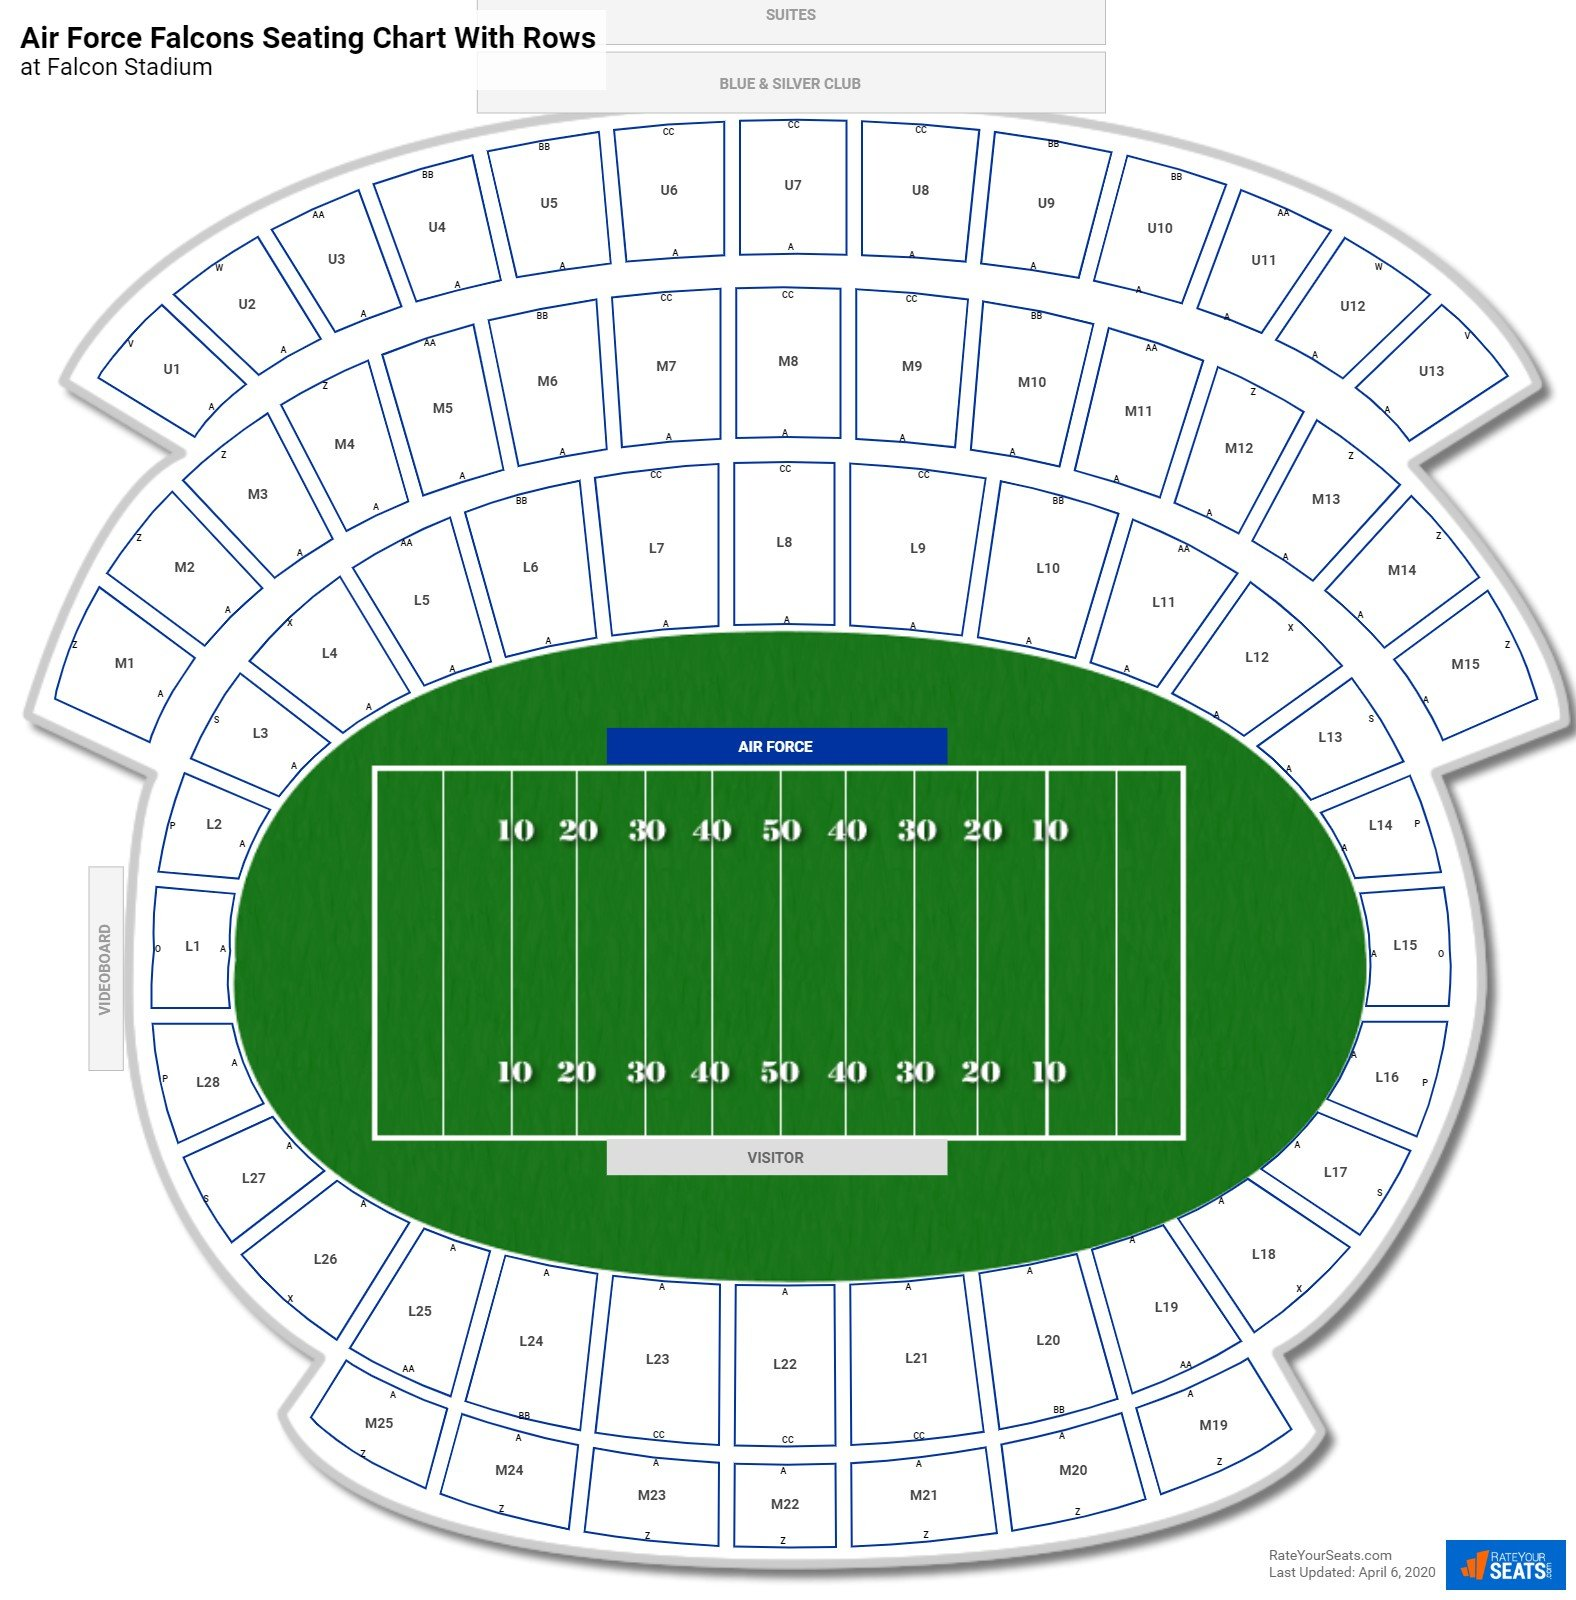 Falcon Stadium seating chart with rows